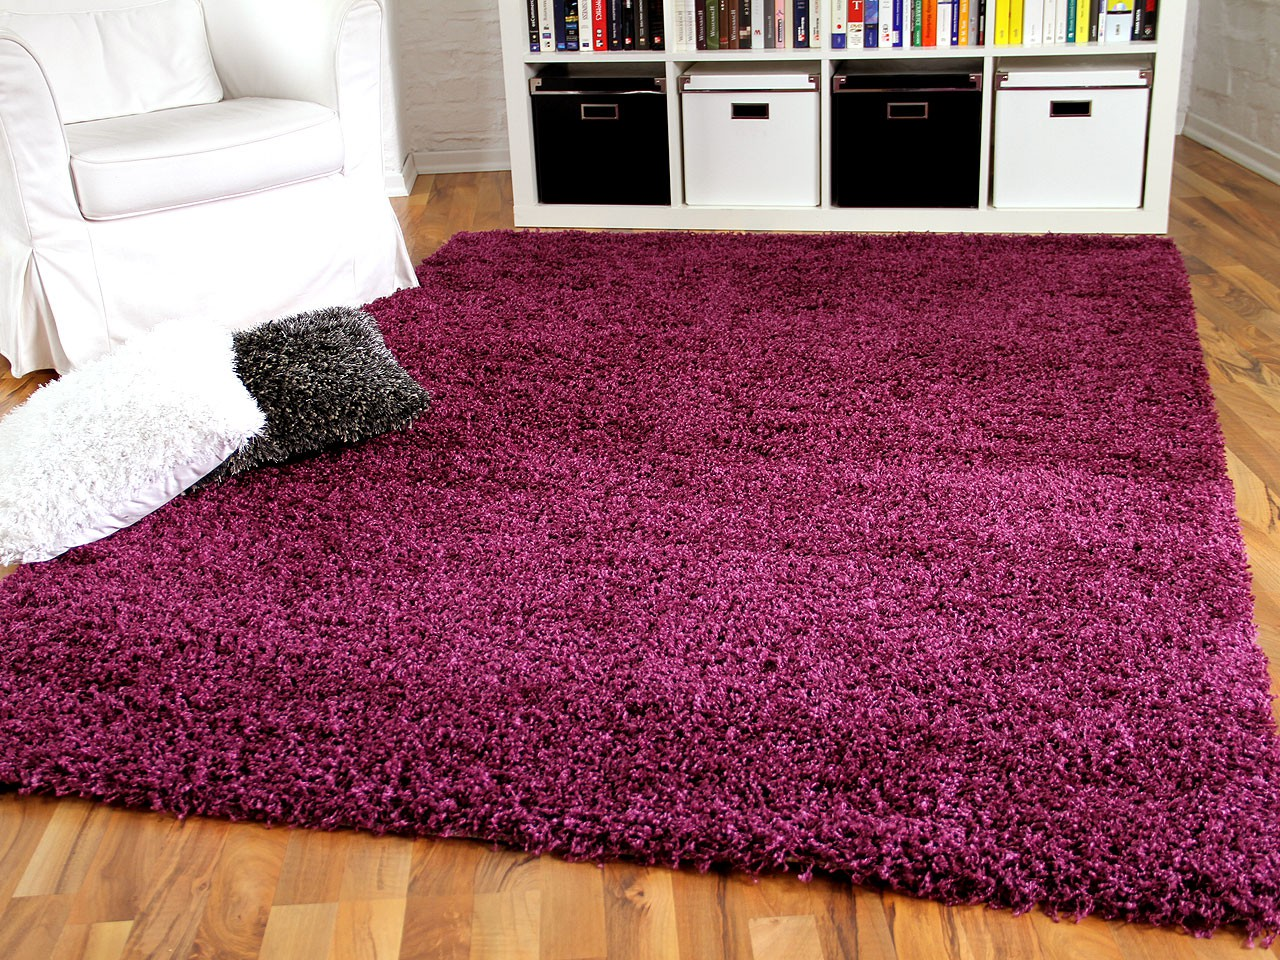 hochflor langflor shaggy teppich aloha purple teppiche hochflor langflor teppiche pink lila und. Black Bedroom Furniture Sets. Home Design Ideas